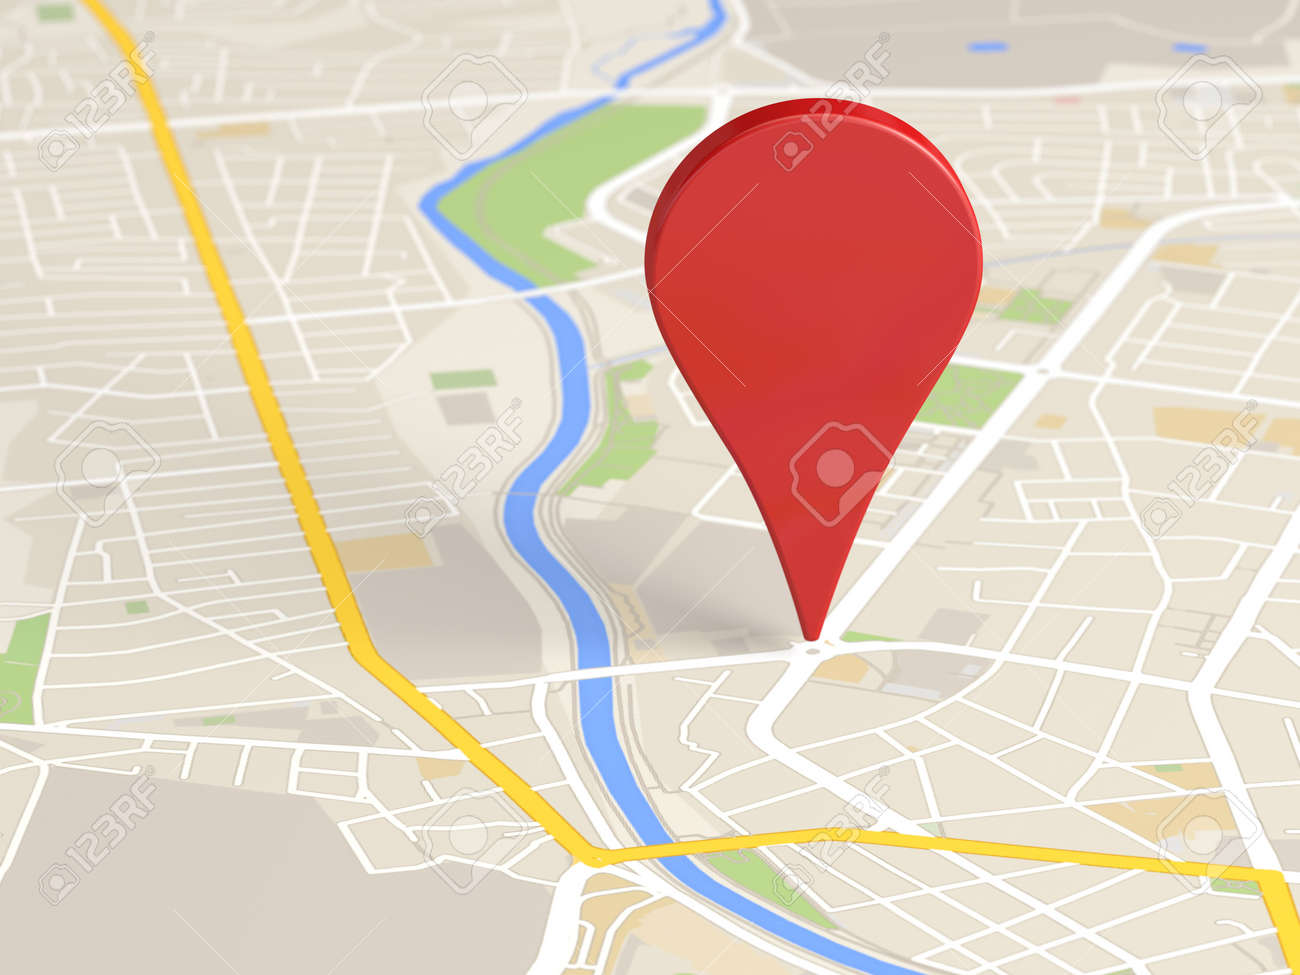 map locator icon on star chart, russia location map, thematic map, bank of america locations map, key map, address map, karratha western australia map, walmart international locations map, bihar india map, pictorial maps, lagos nigeria on map, topological map, hyderabad location on map, istanbul location on map, choropleth map, islamabad location on map, geologic map, grid map, physical map, world map, impz dubai location map, france location map, west us map, topographic map, mappa mundi, special purpose map, plan your road trip map, darfur location on map, t and o map, city map,